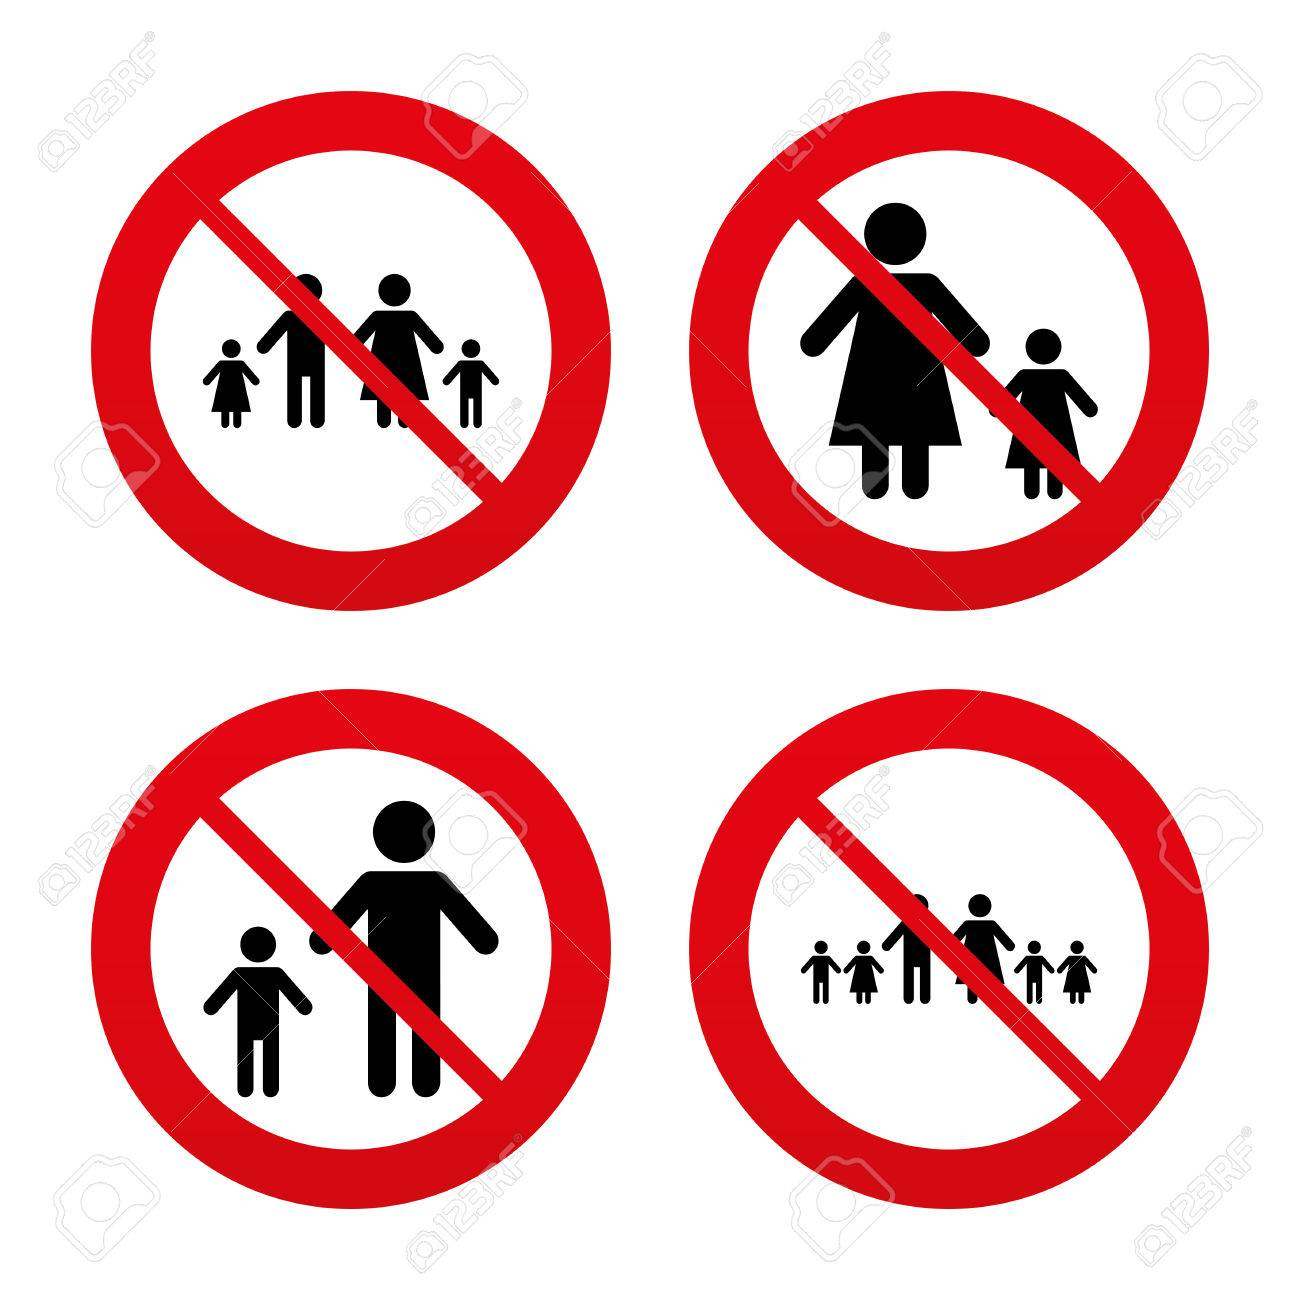 No ban or stop signs large family with children icon parents no ban or stop signs large family with children icon parents and kids buycottarizona